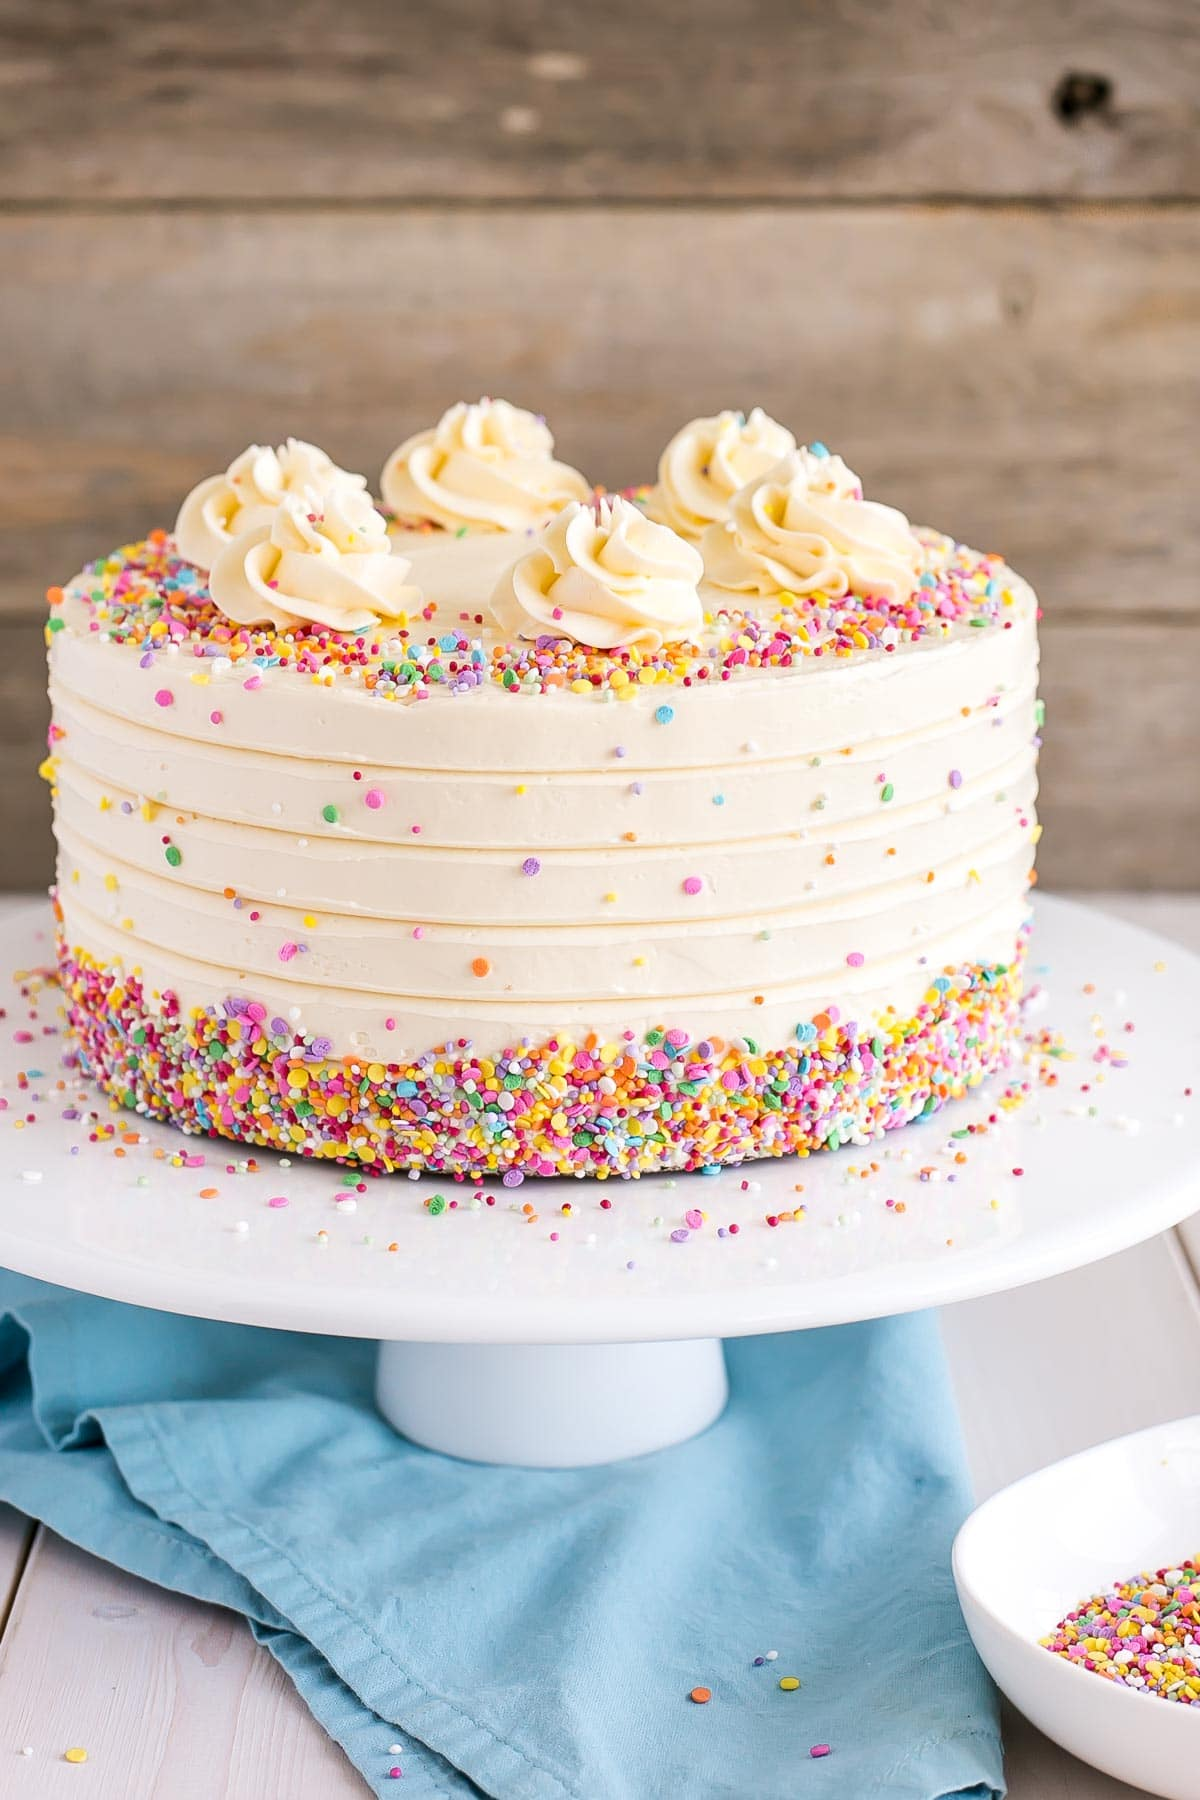 The Best Vanilla Cake Recipe With A Swiss Meringue Buttercream